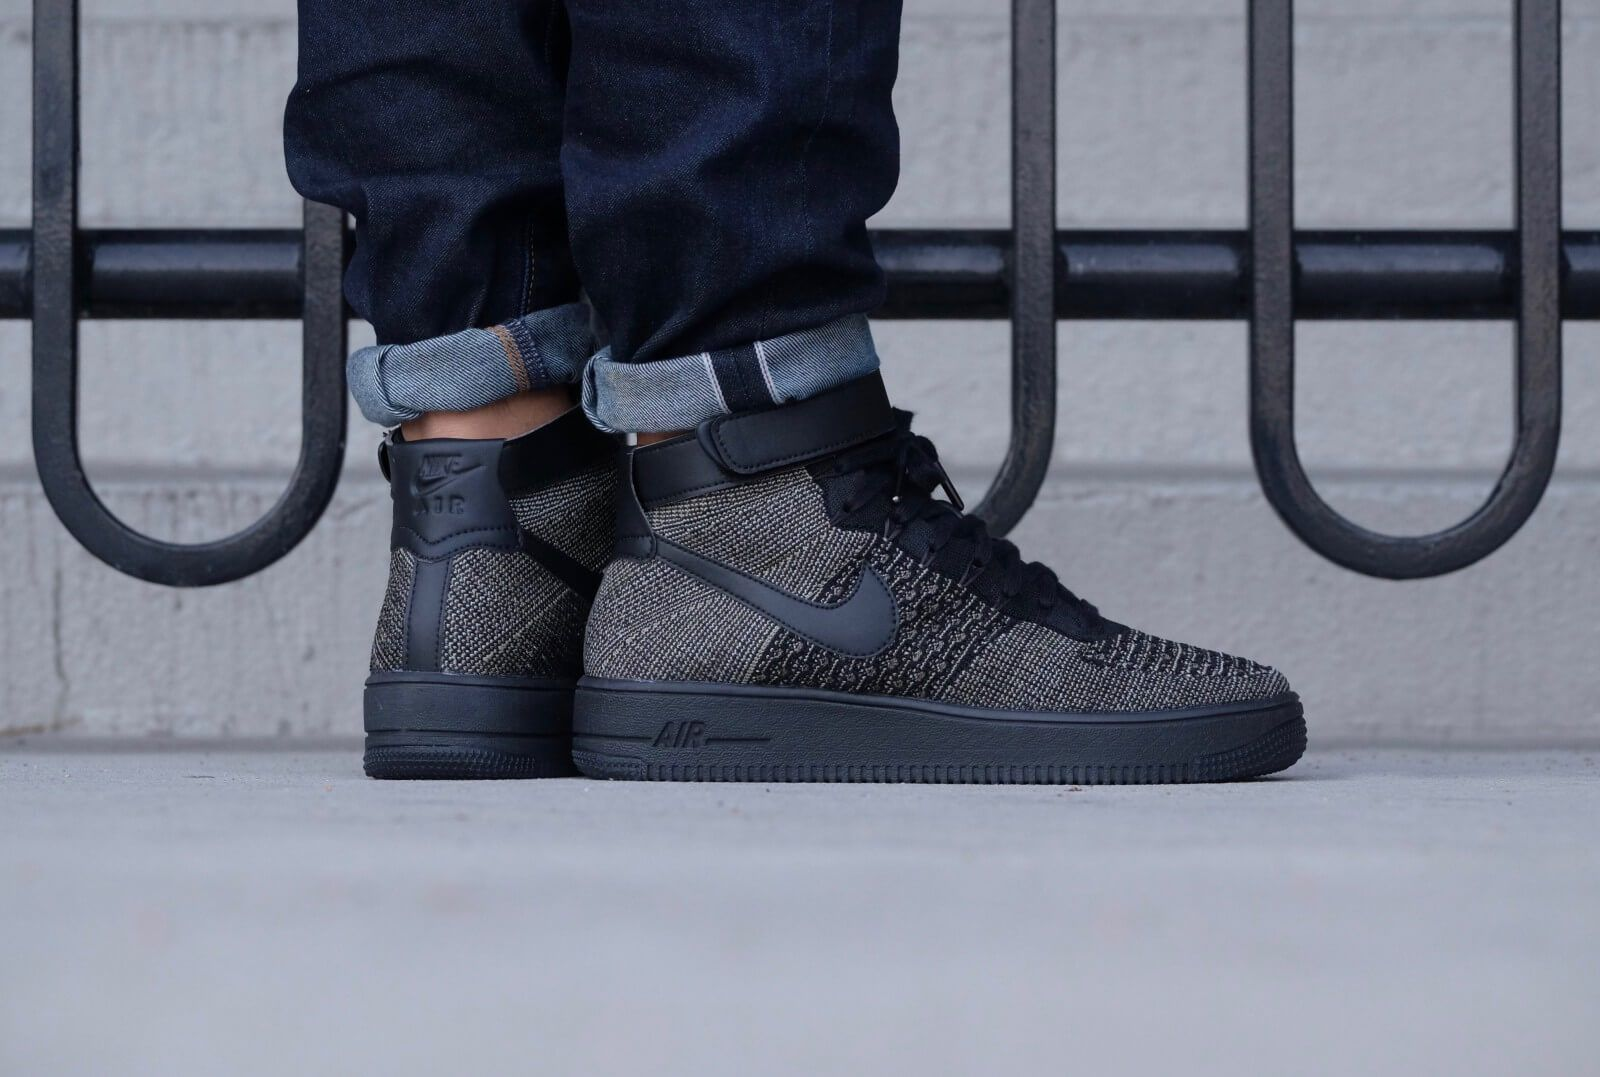 Air Force 1 Ultra Flyknit Mid Palm Green/Black-White   Nike ...